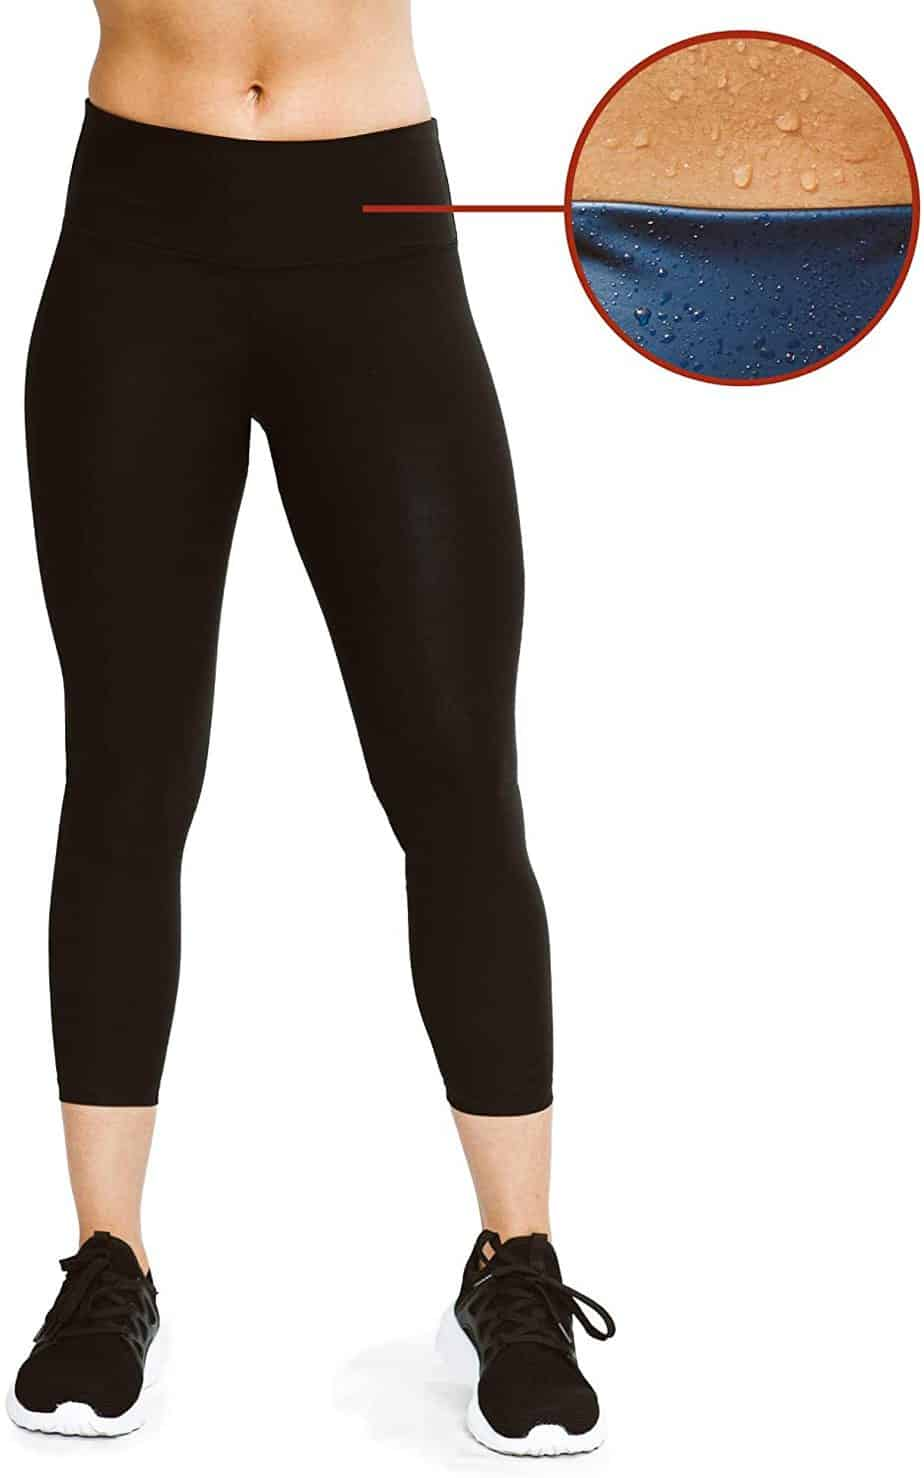 Sweat Shaper Women's Slimming Leggings